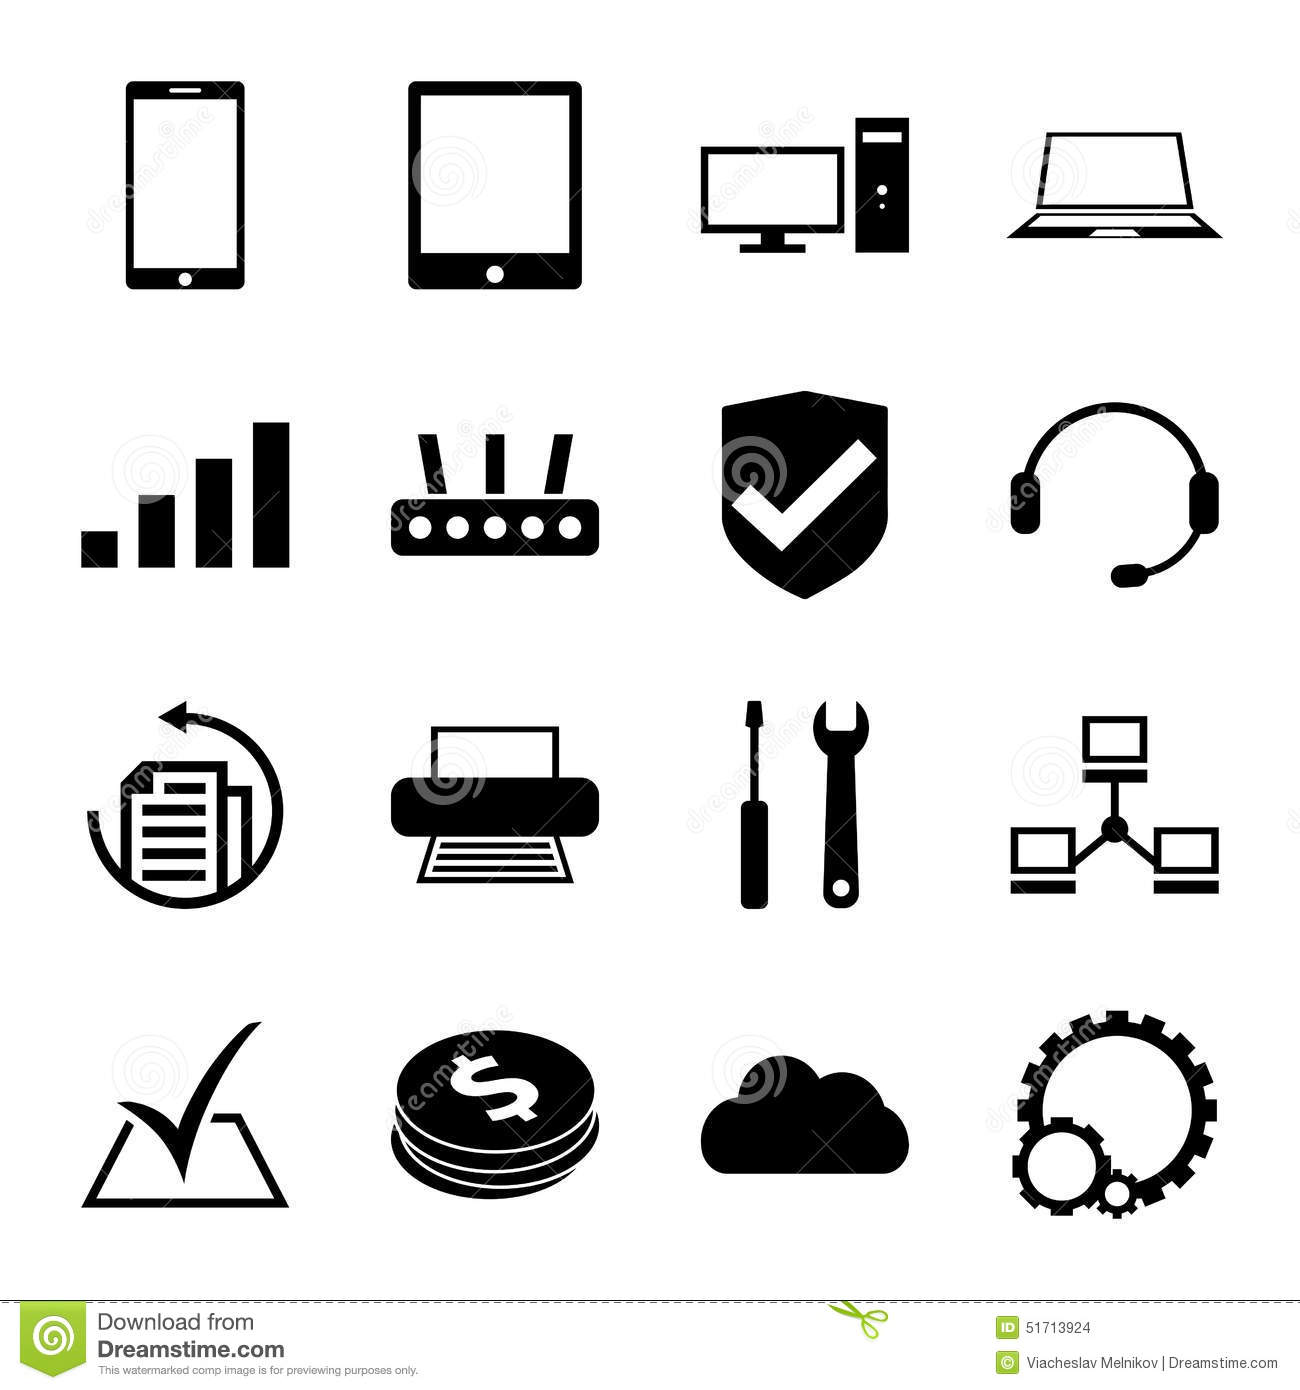 119809 Free Money Icons Vector likewise Stock Illustration  puter Repair Service Icons Set Monochrome Laptop Smartphone Support Image51713924 moreover Plant Layout 46555840 additionally World furthermore policebikestore. on all computer system